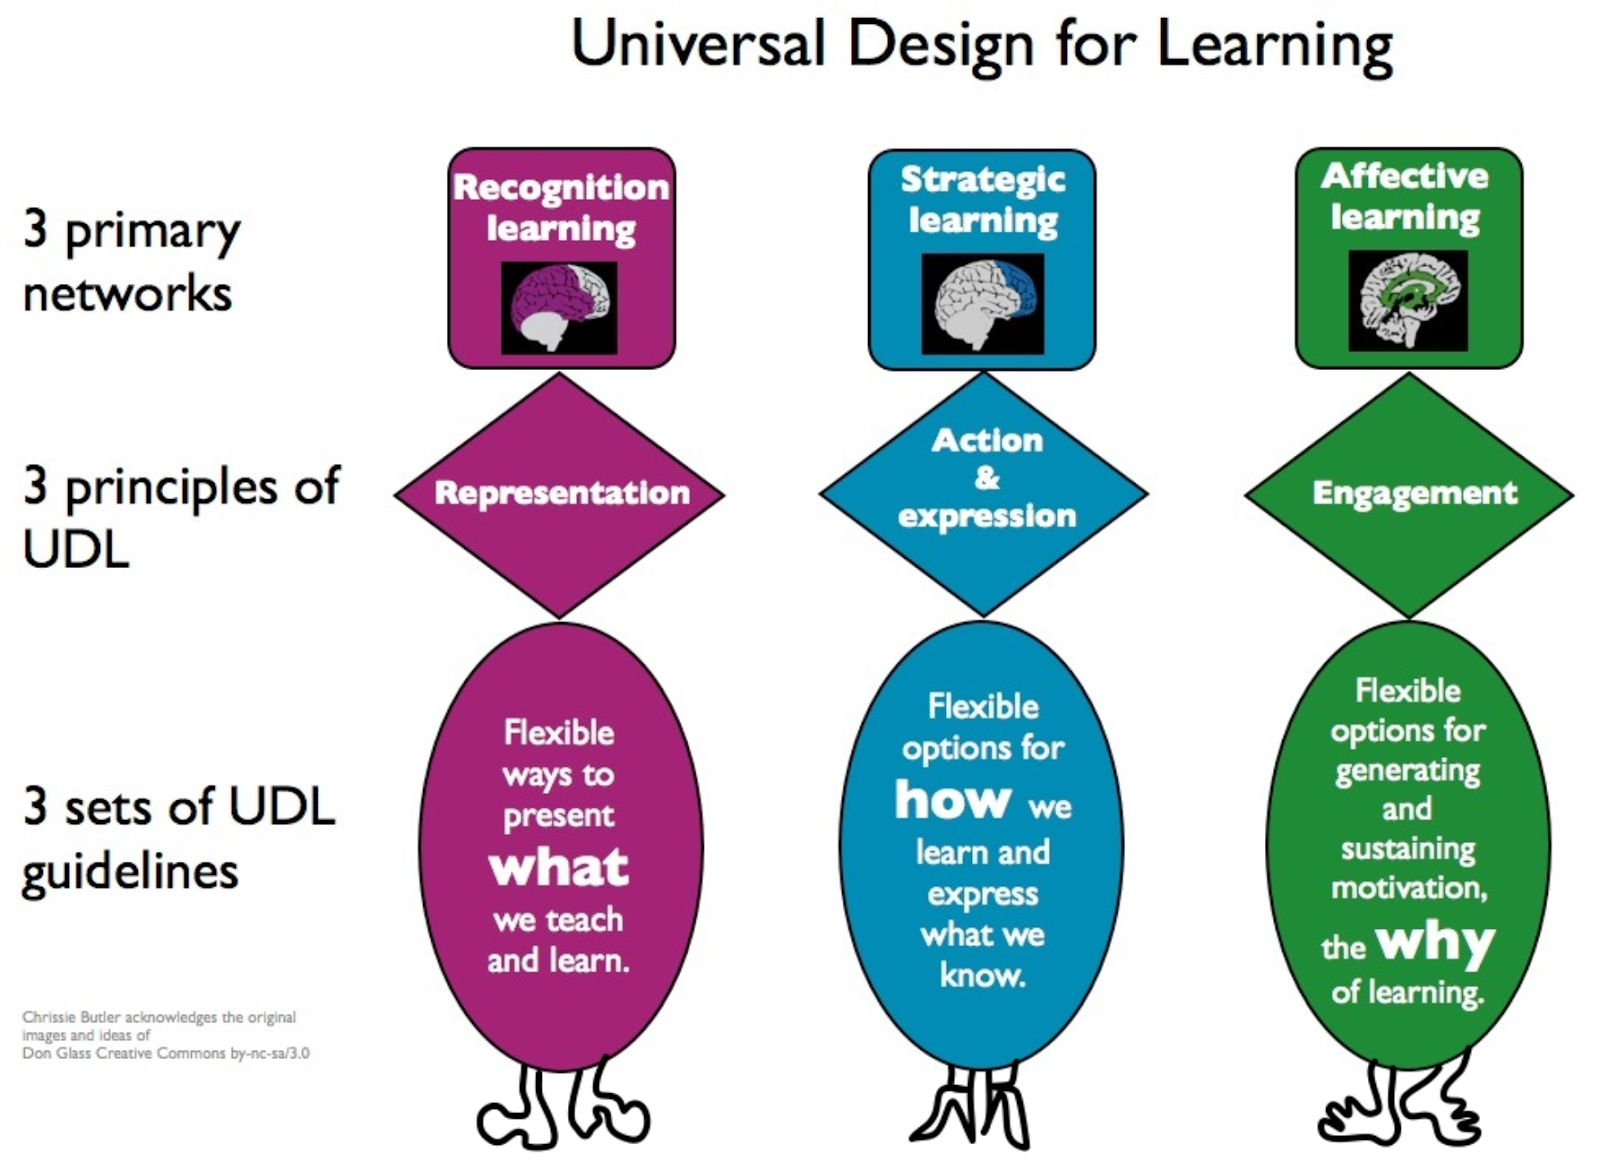 Graphic depiction of UDL networks, principles, and guidelines